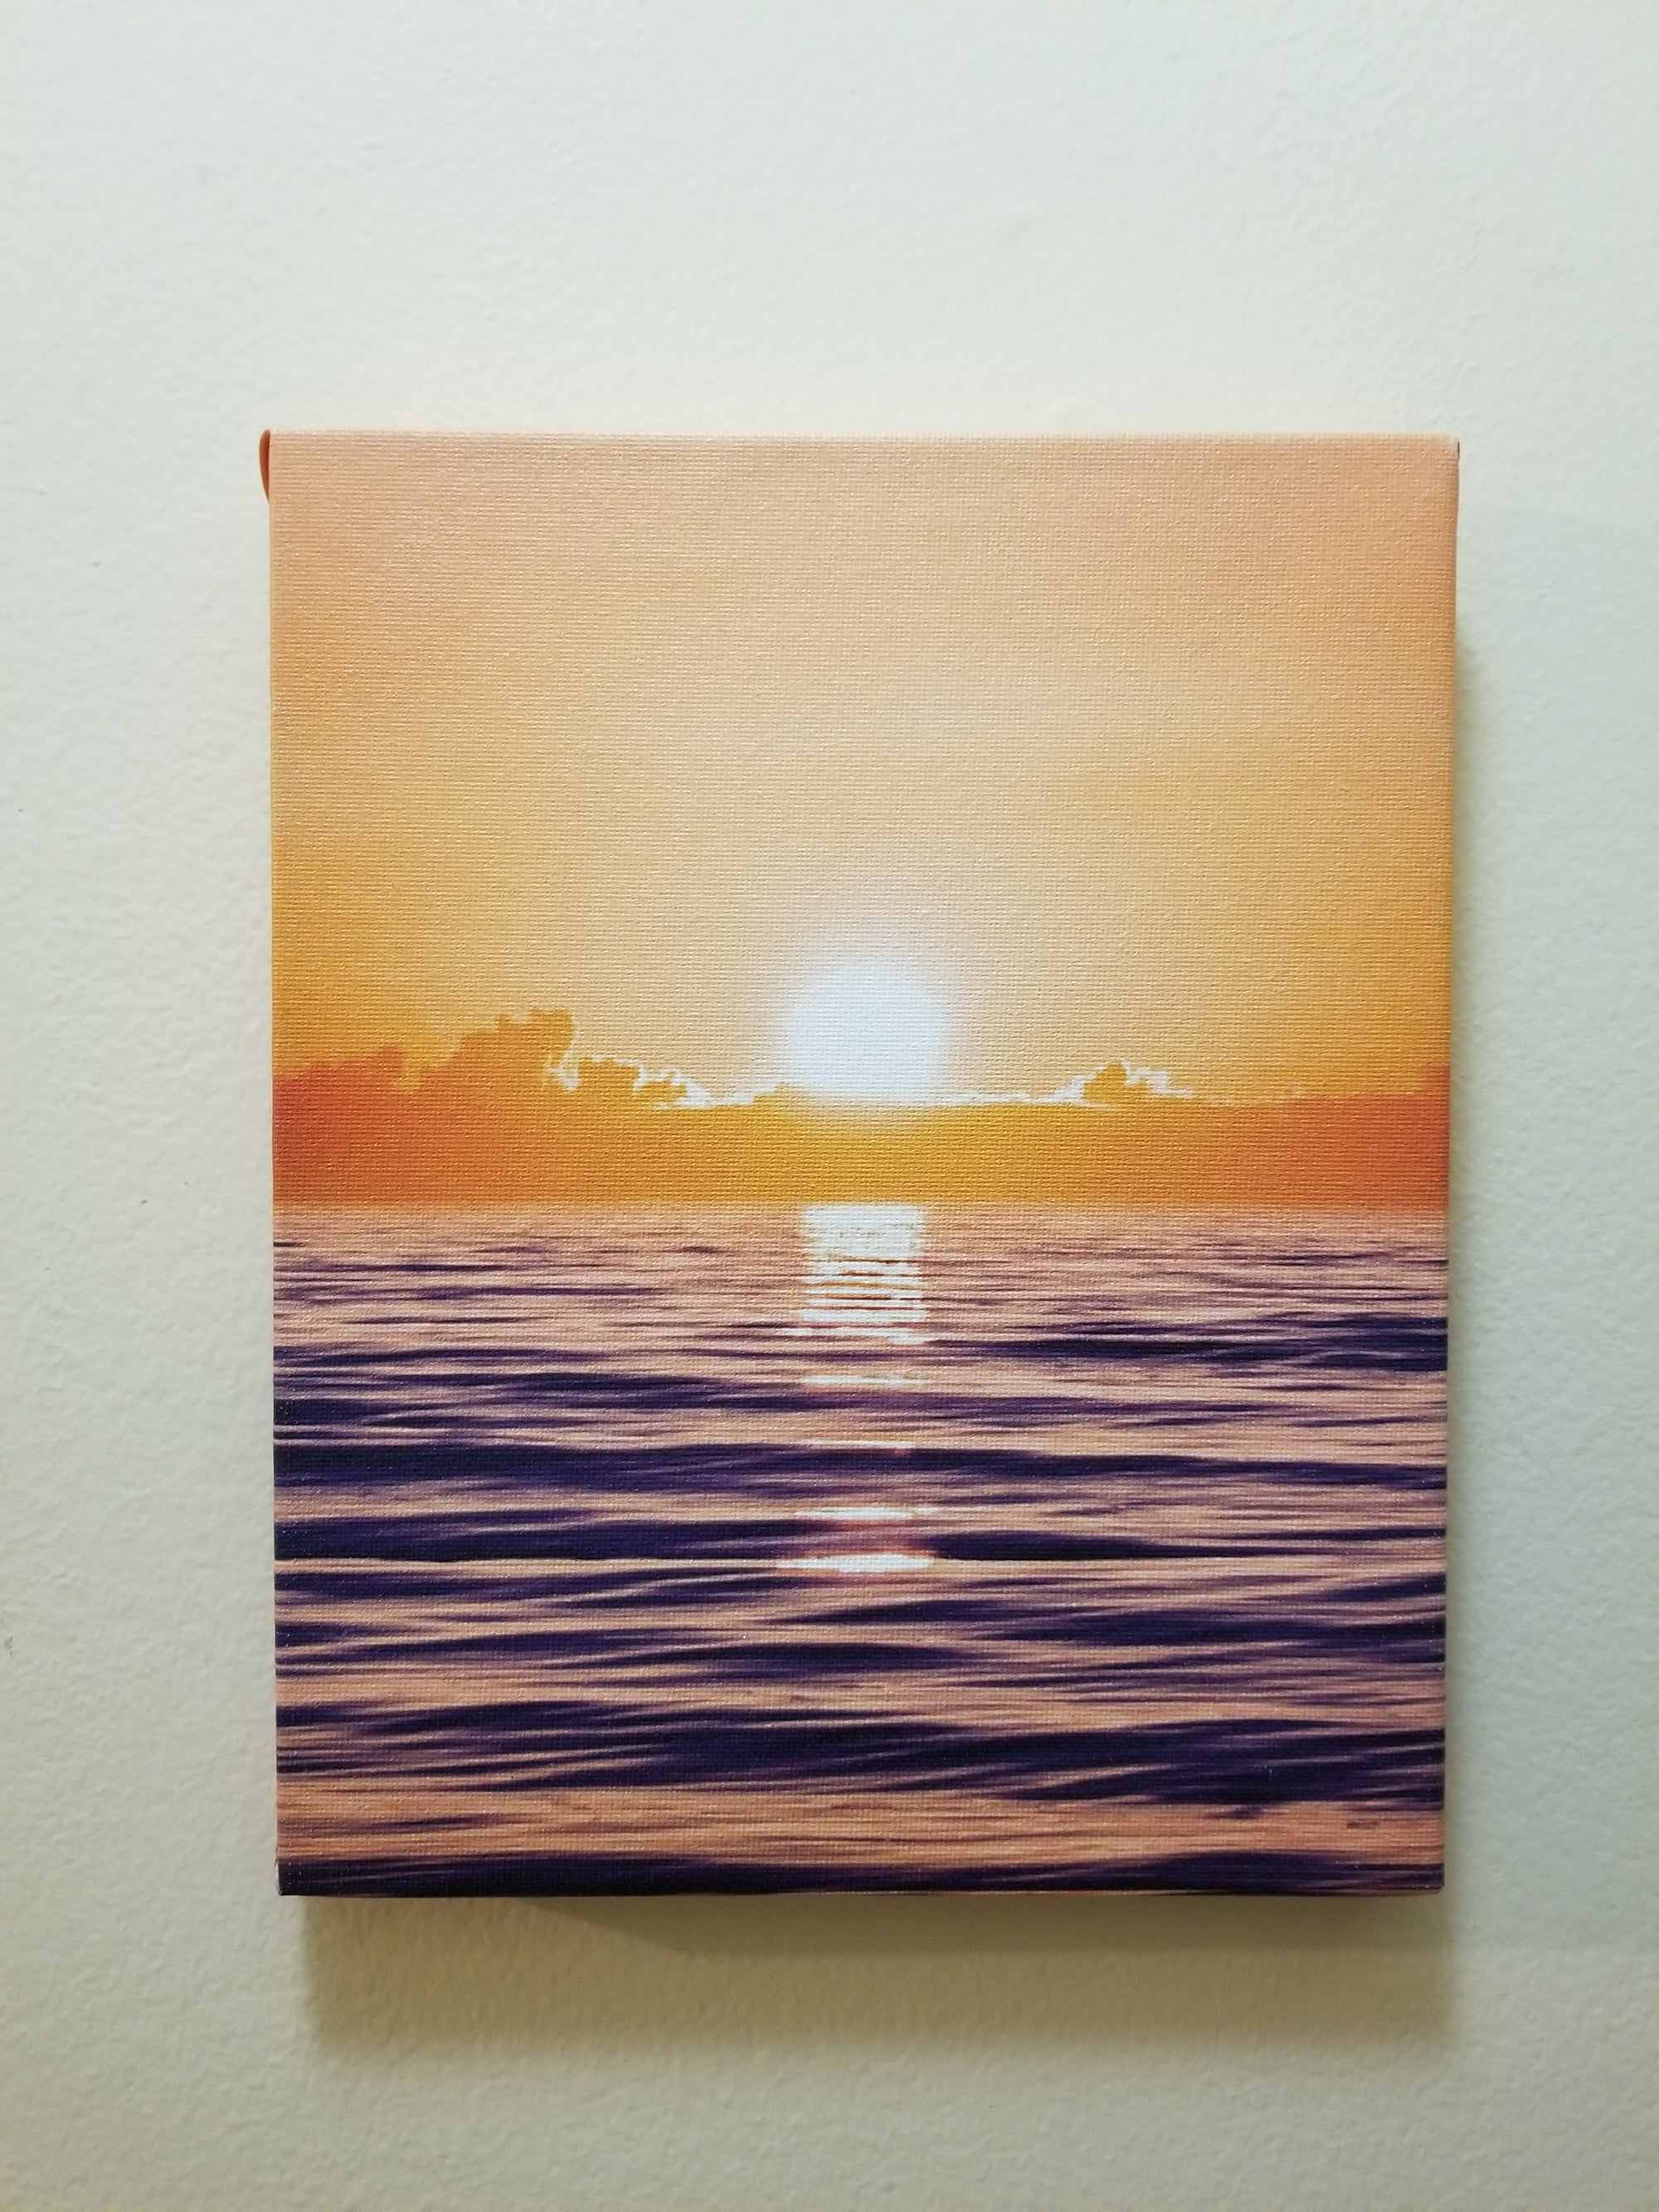 "Sunset 8""x10"" Surf Print by Jared Jeffs"